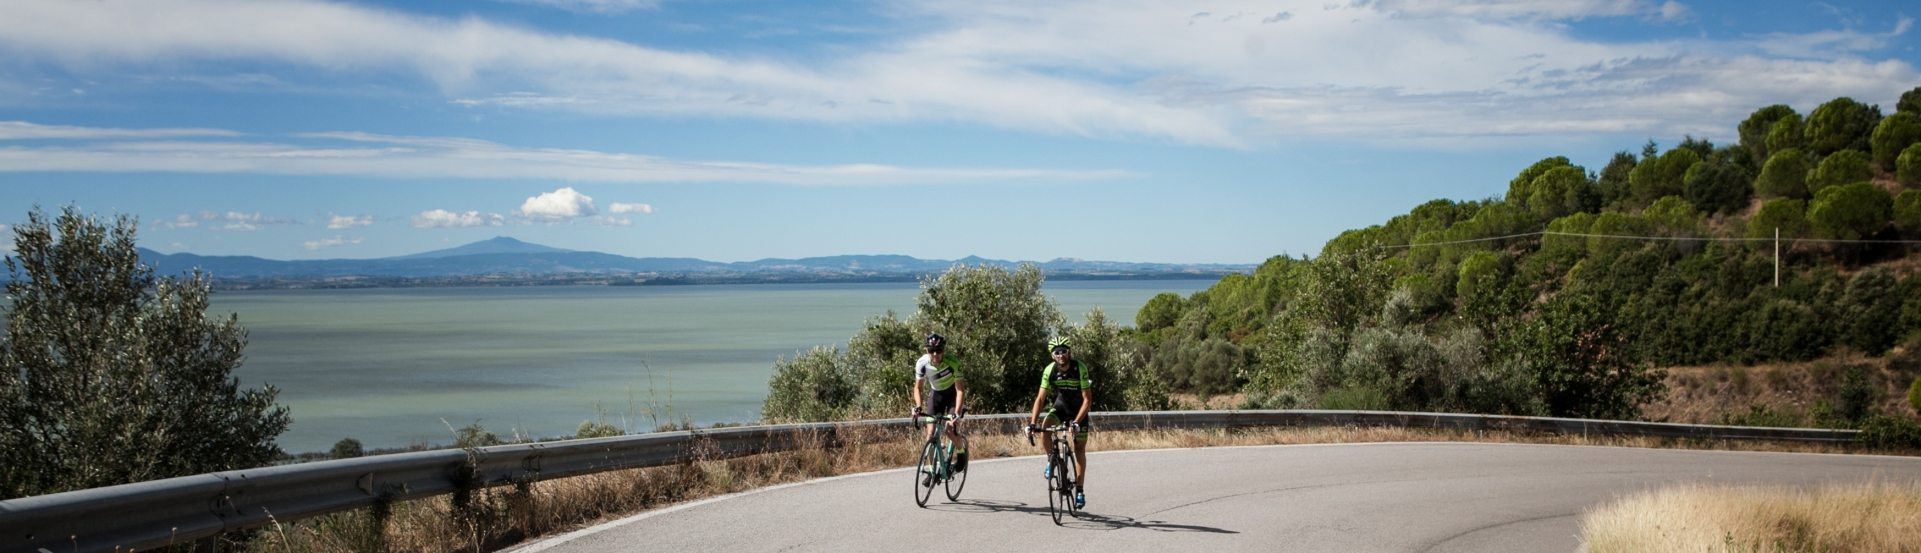 Bike Holidays at Trasimeno Lake